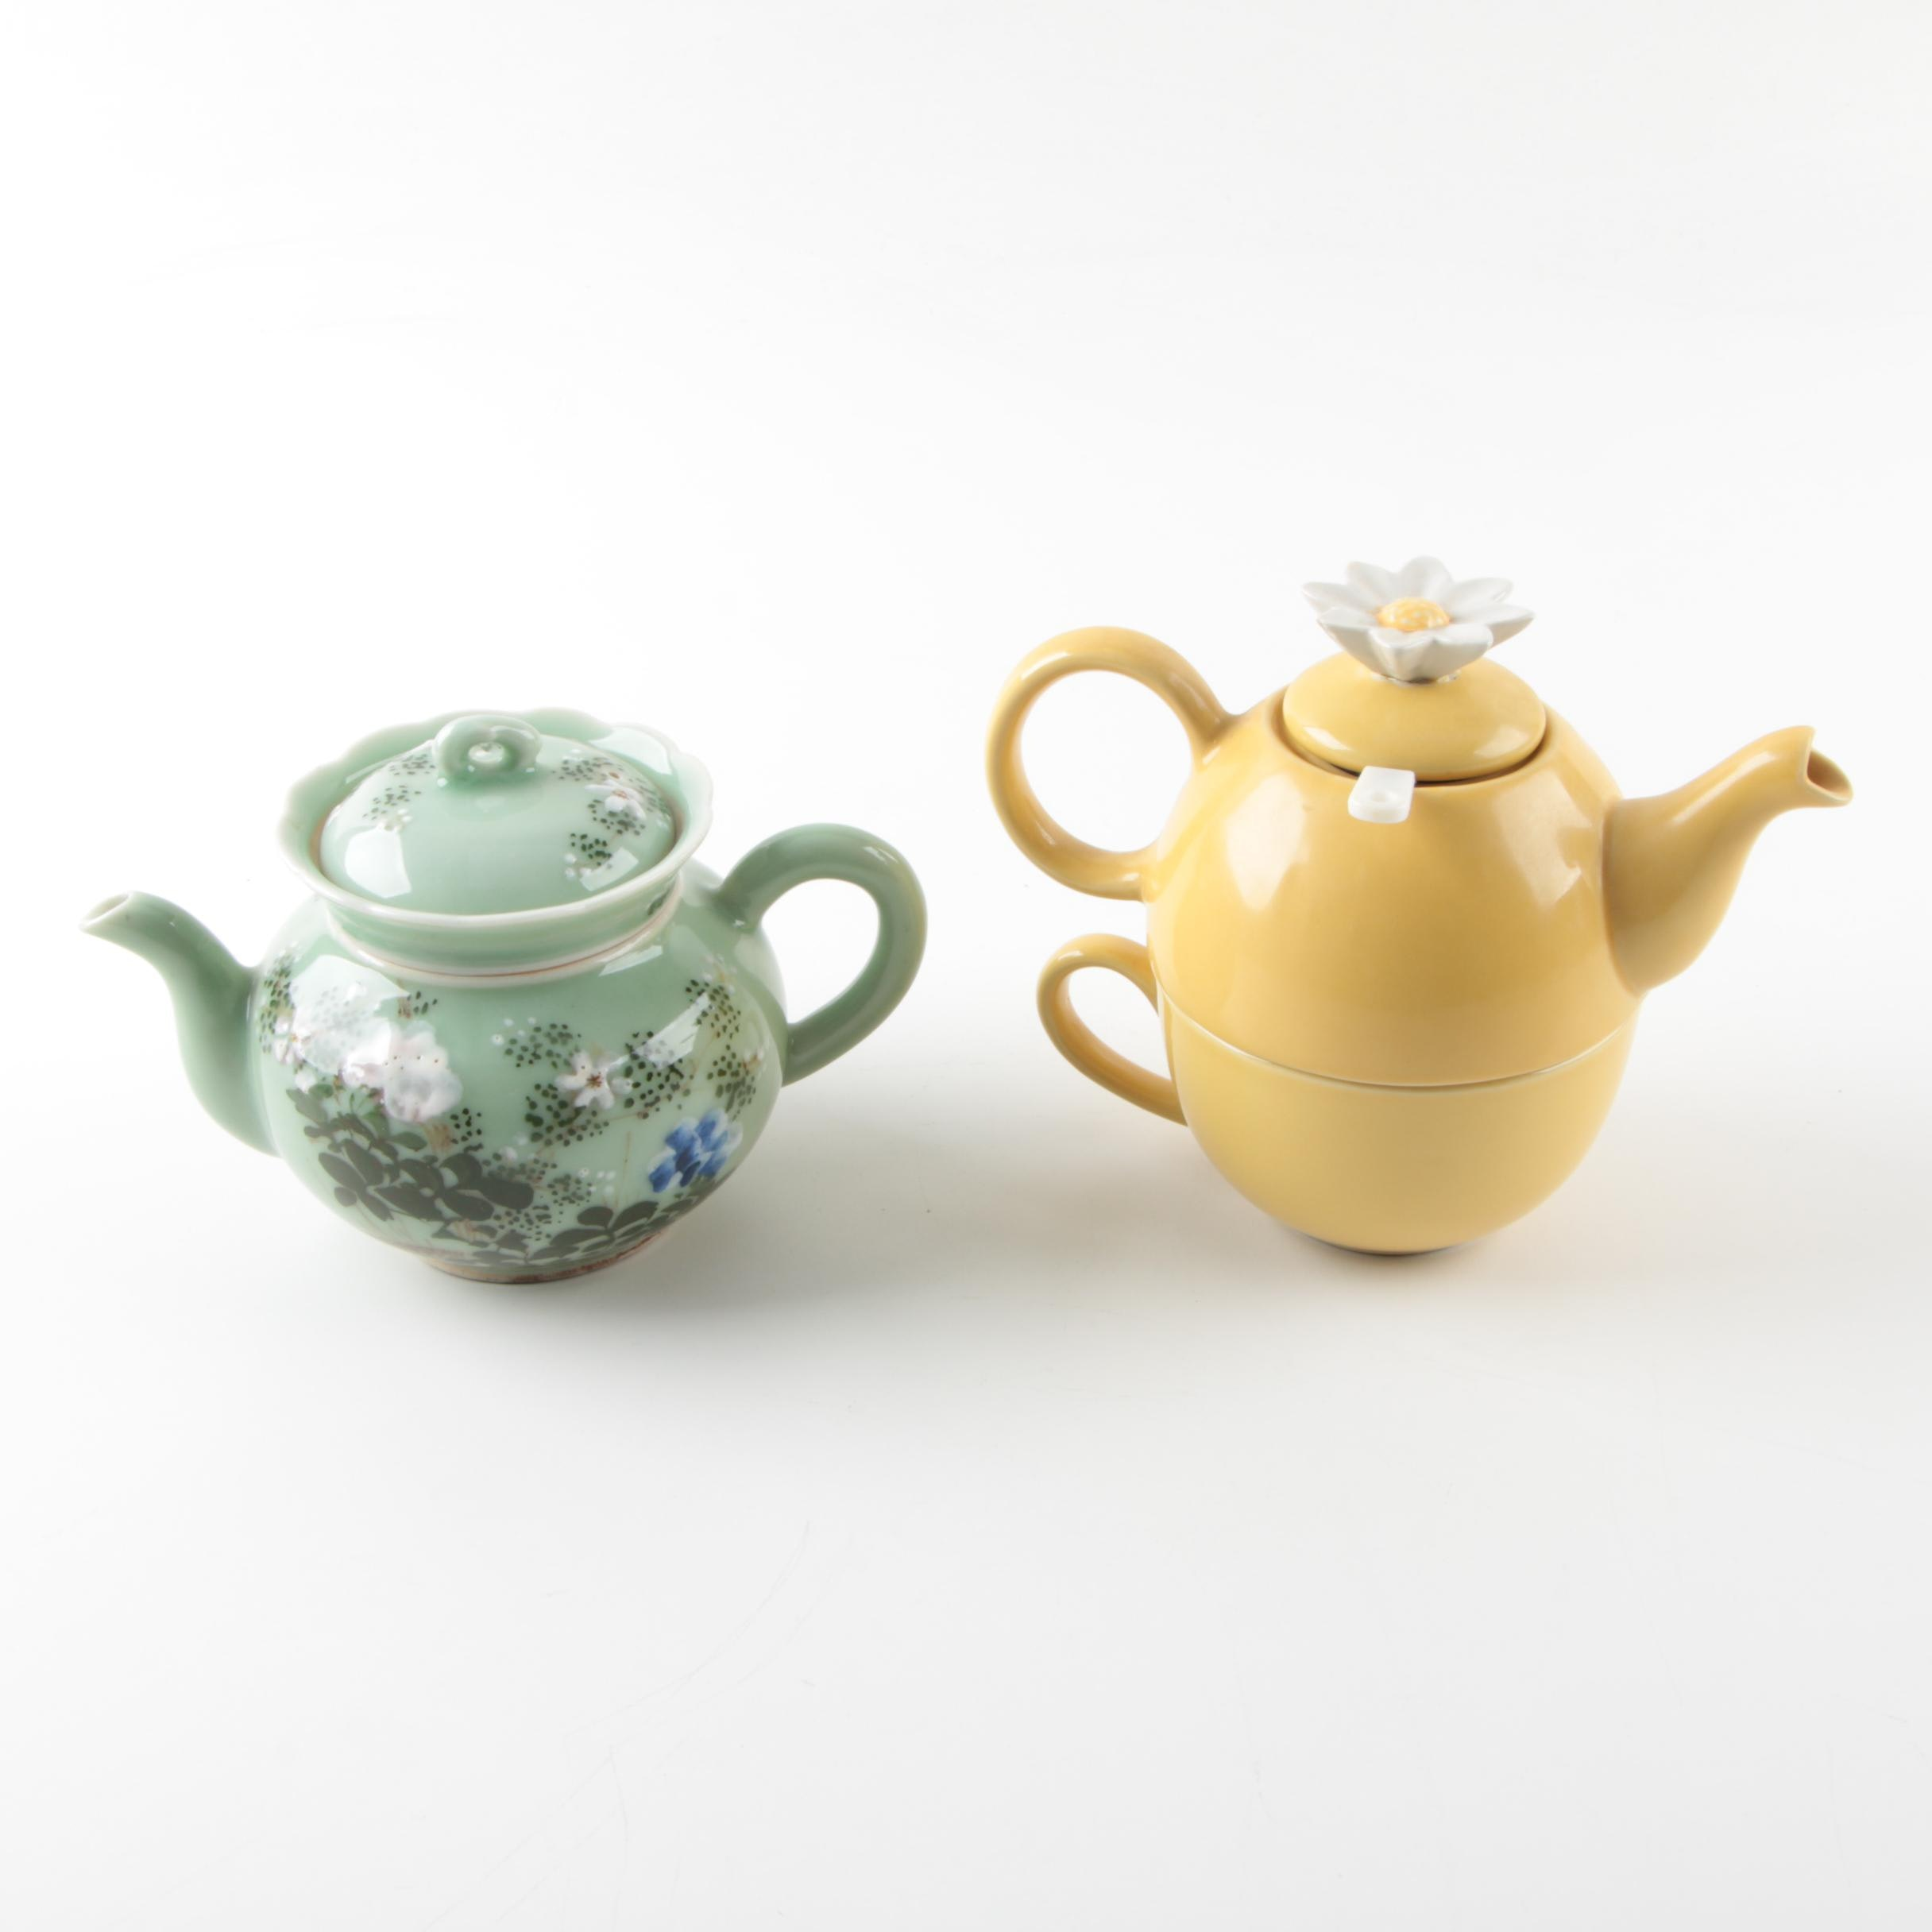 Floral Ceramic Teapot and Tea for One Set